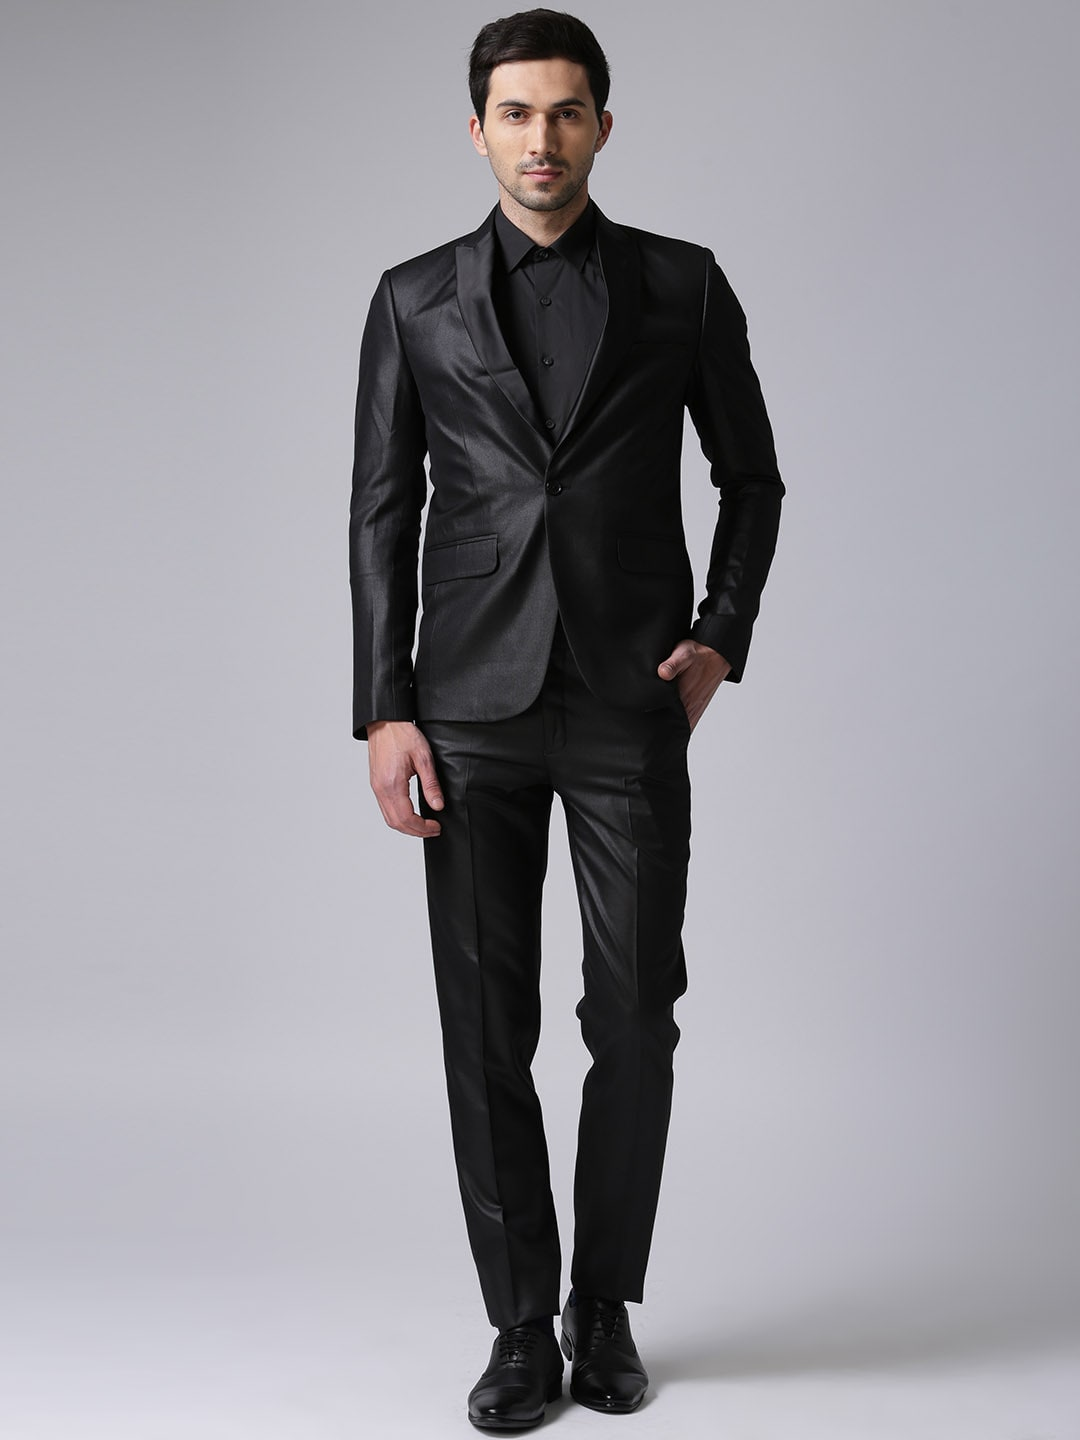 Dress Formal for men pictures catalog photo